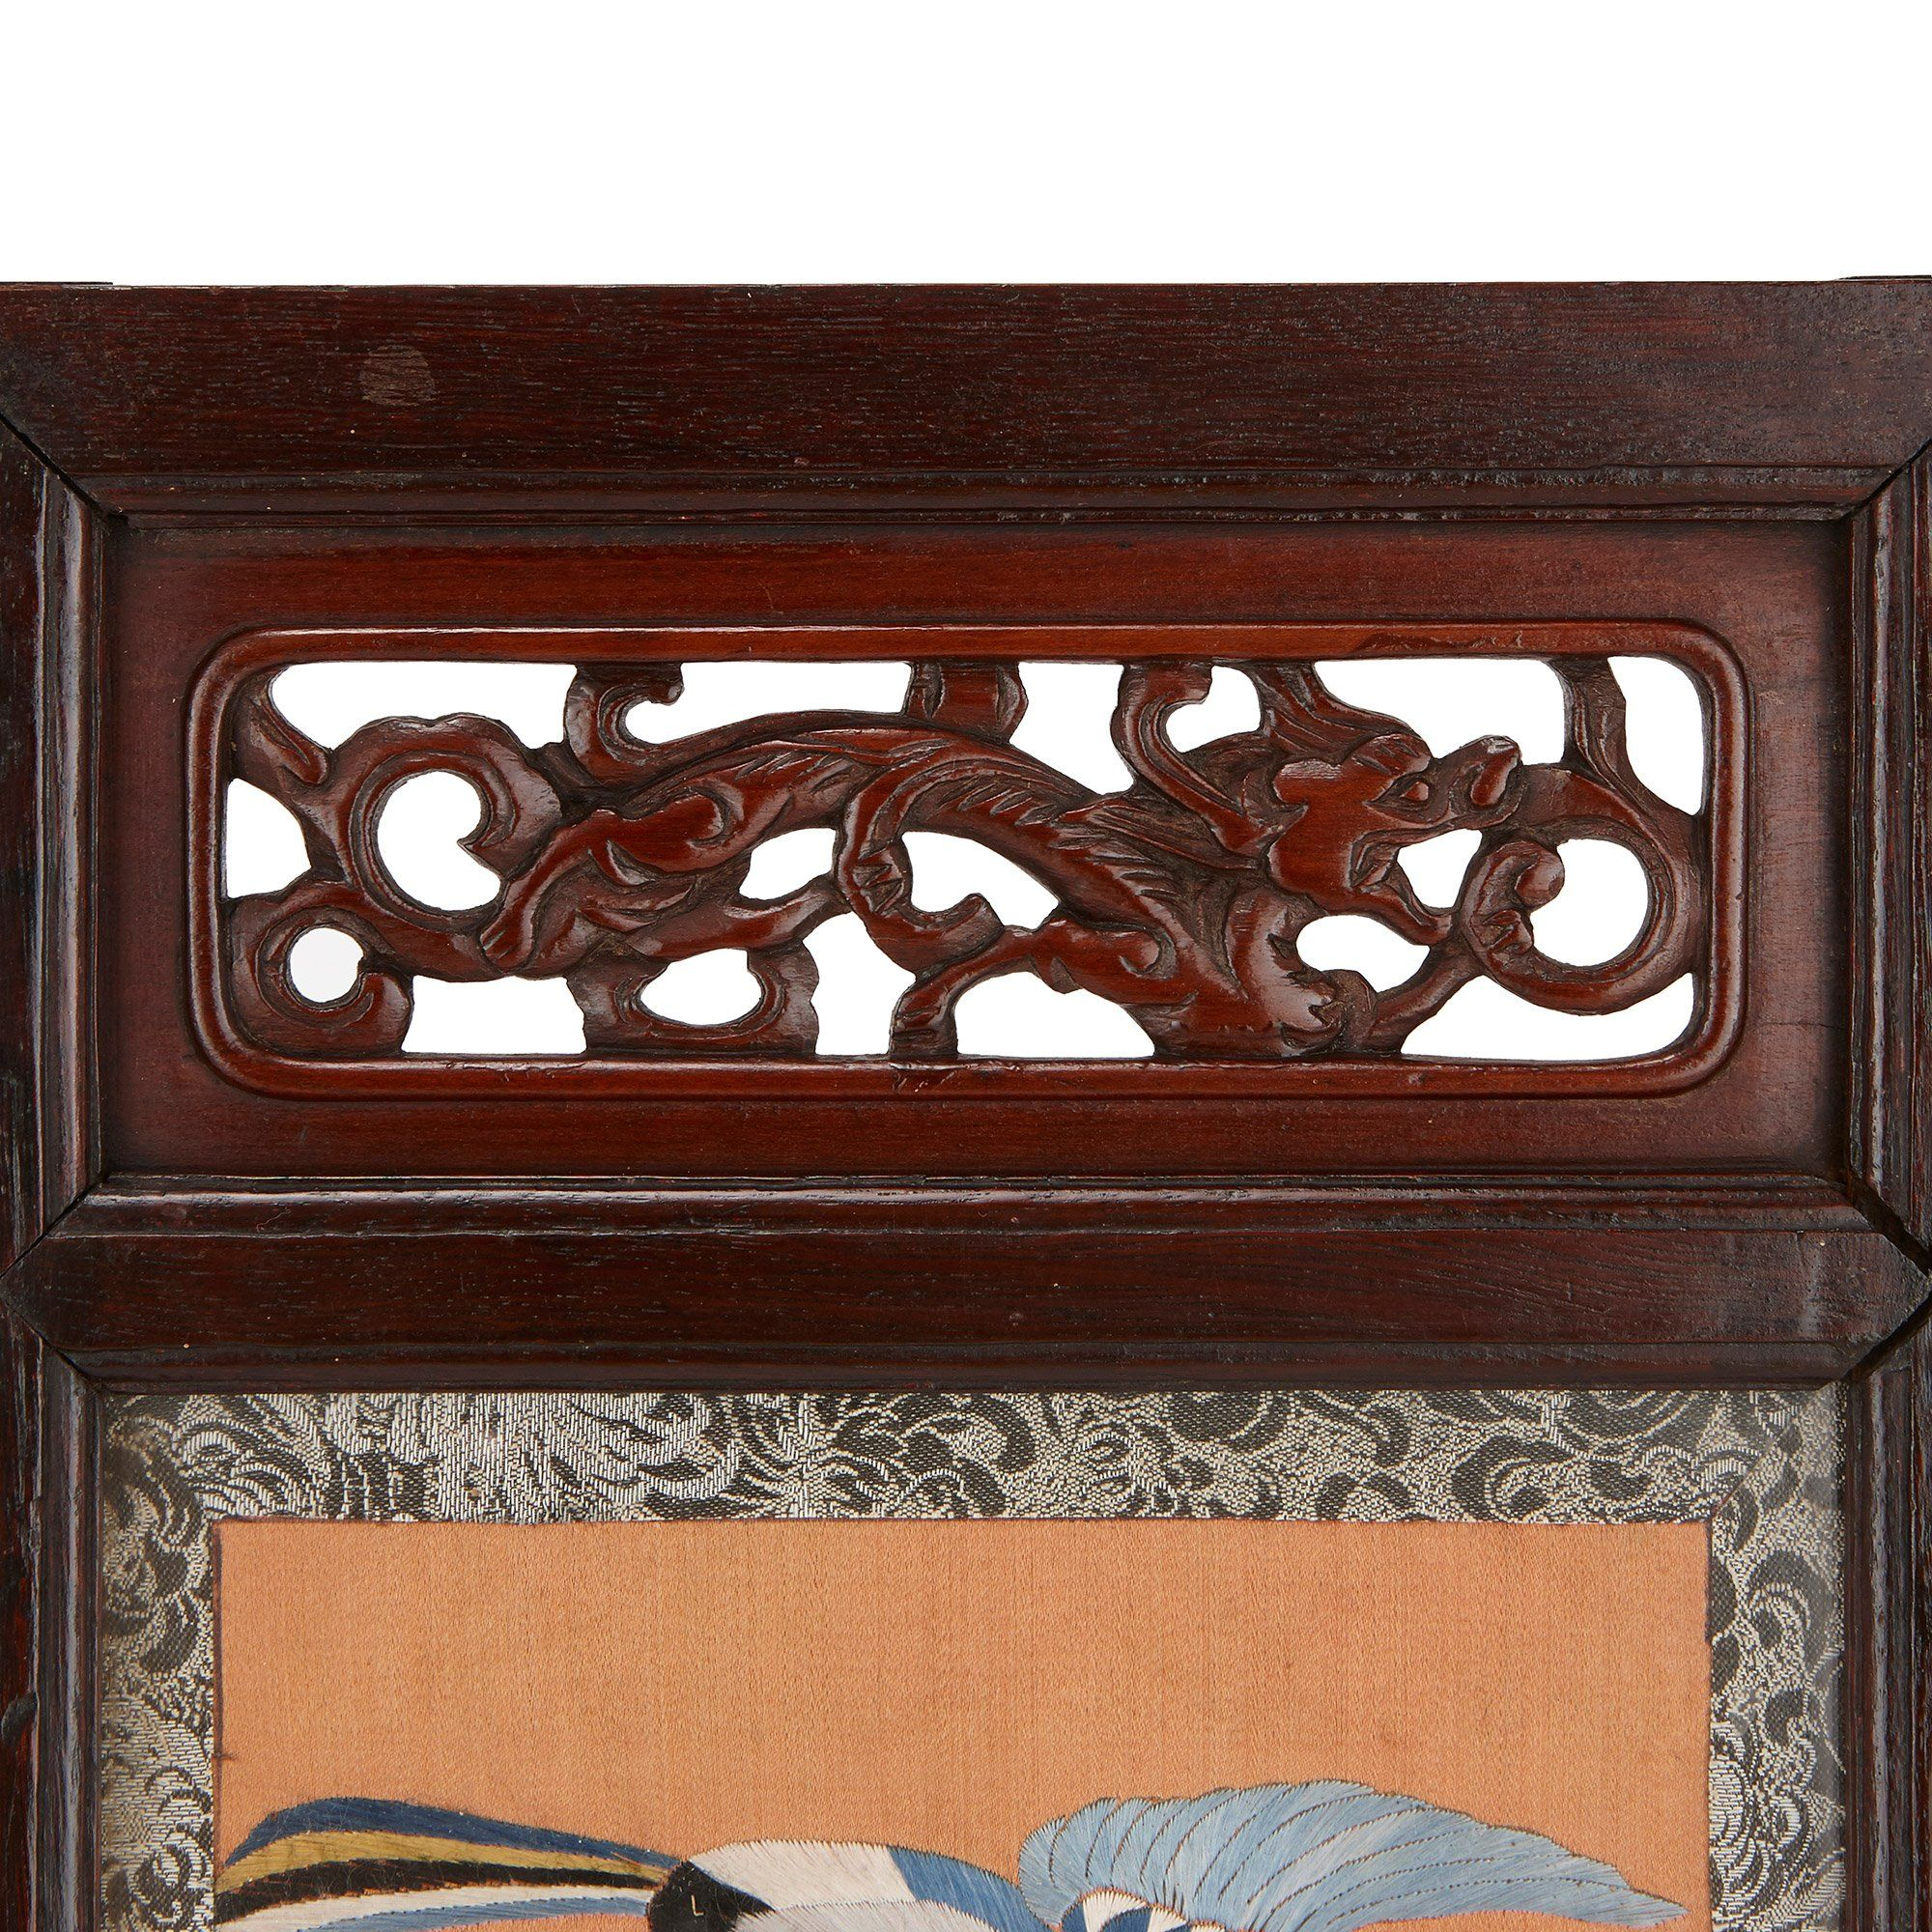 Late Qing Dynasty Antique Chinese Table Screen Mayfair